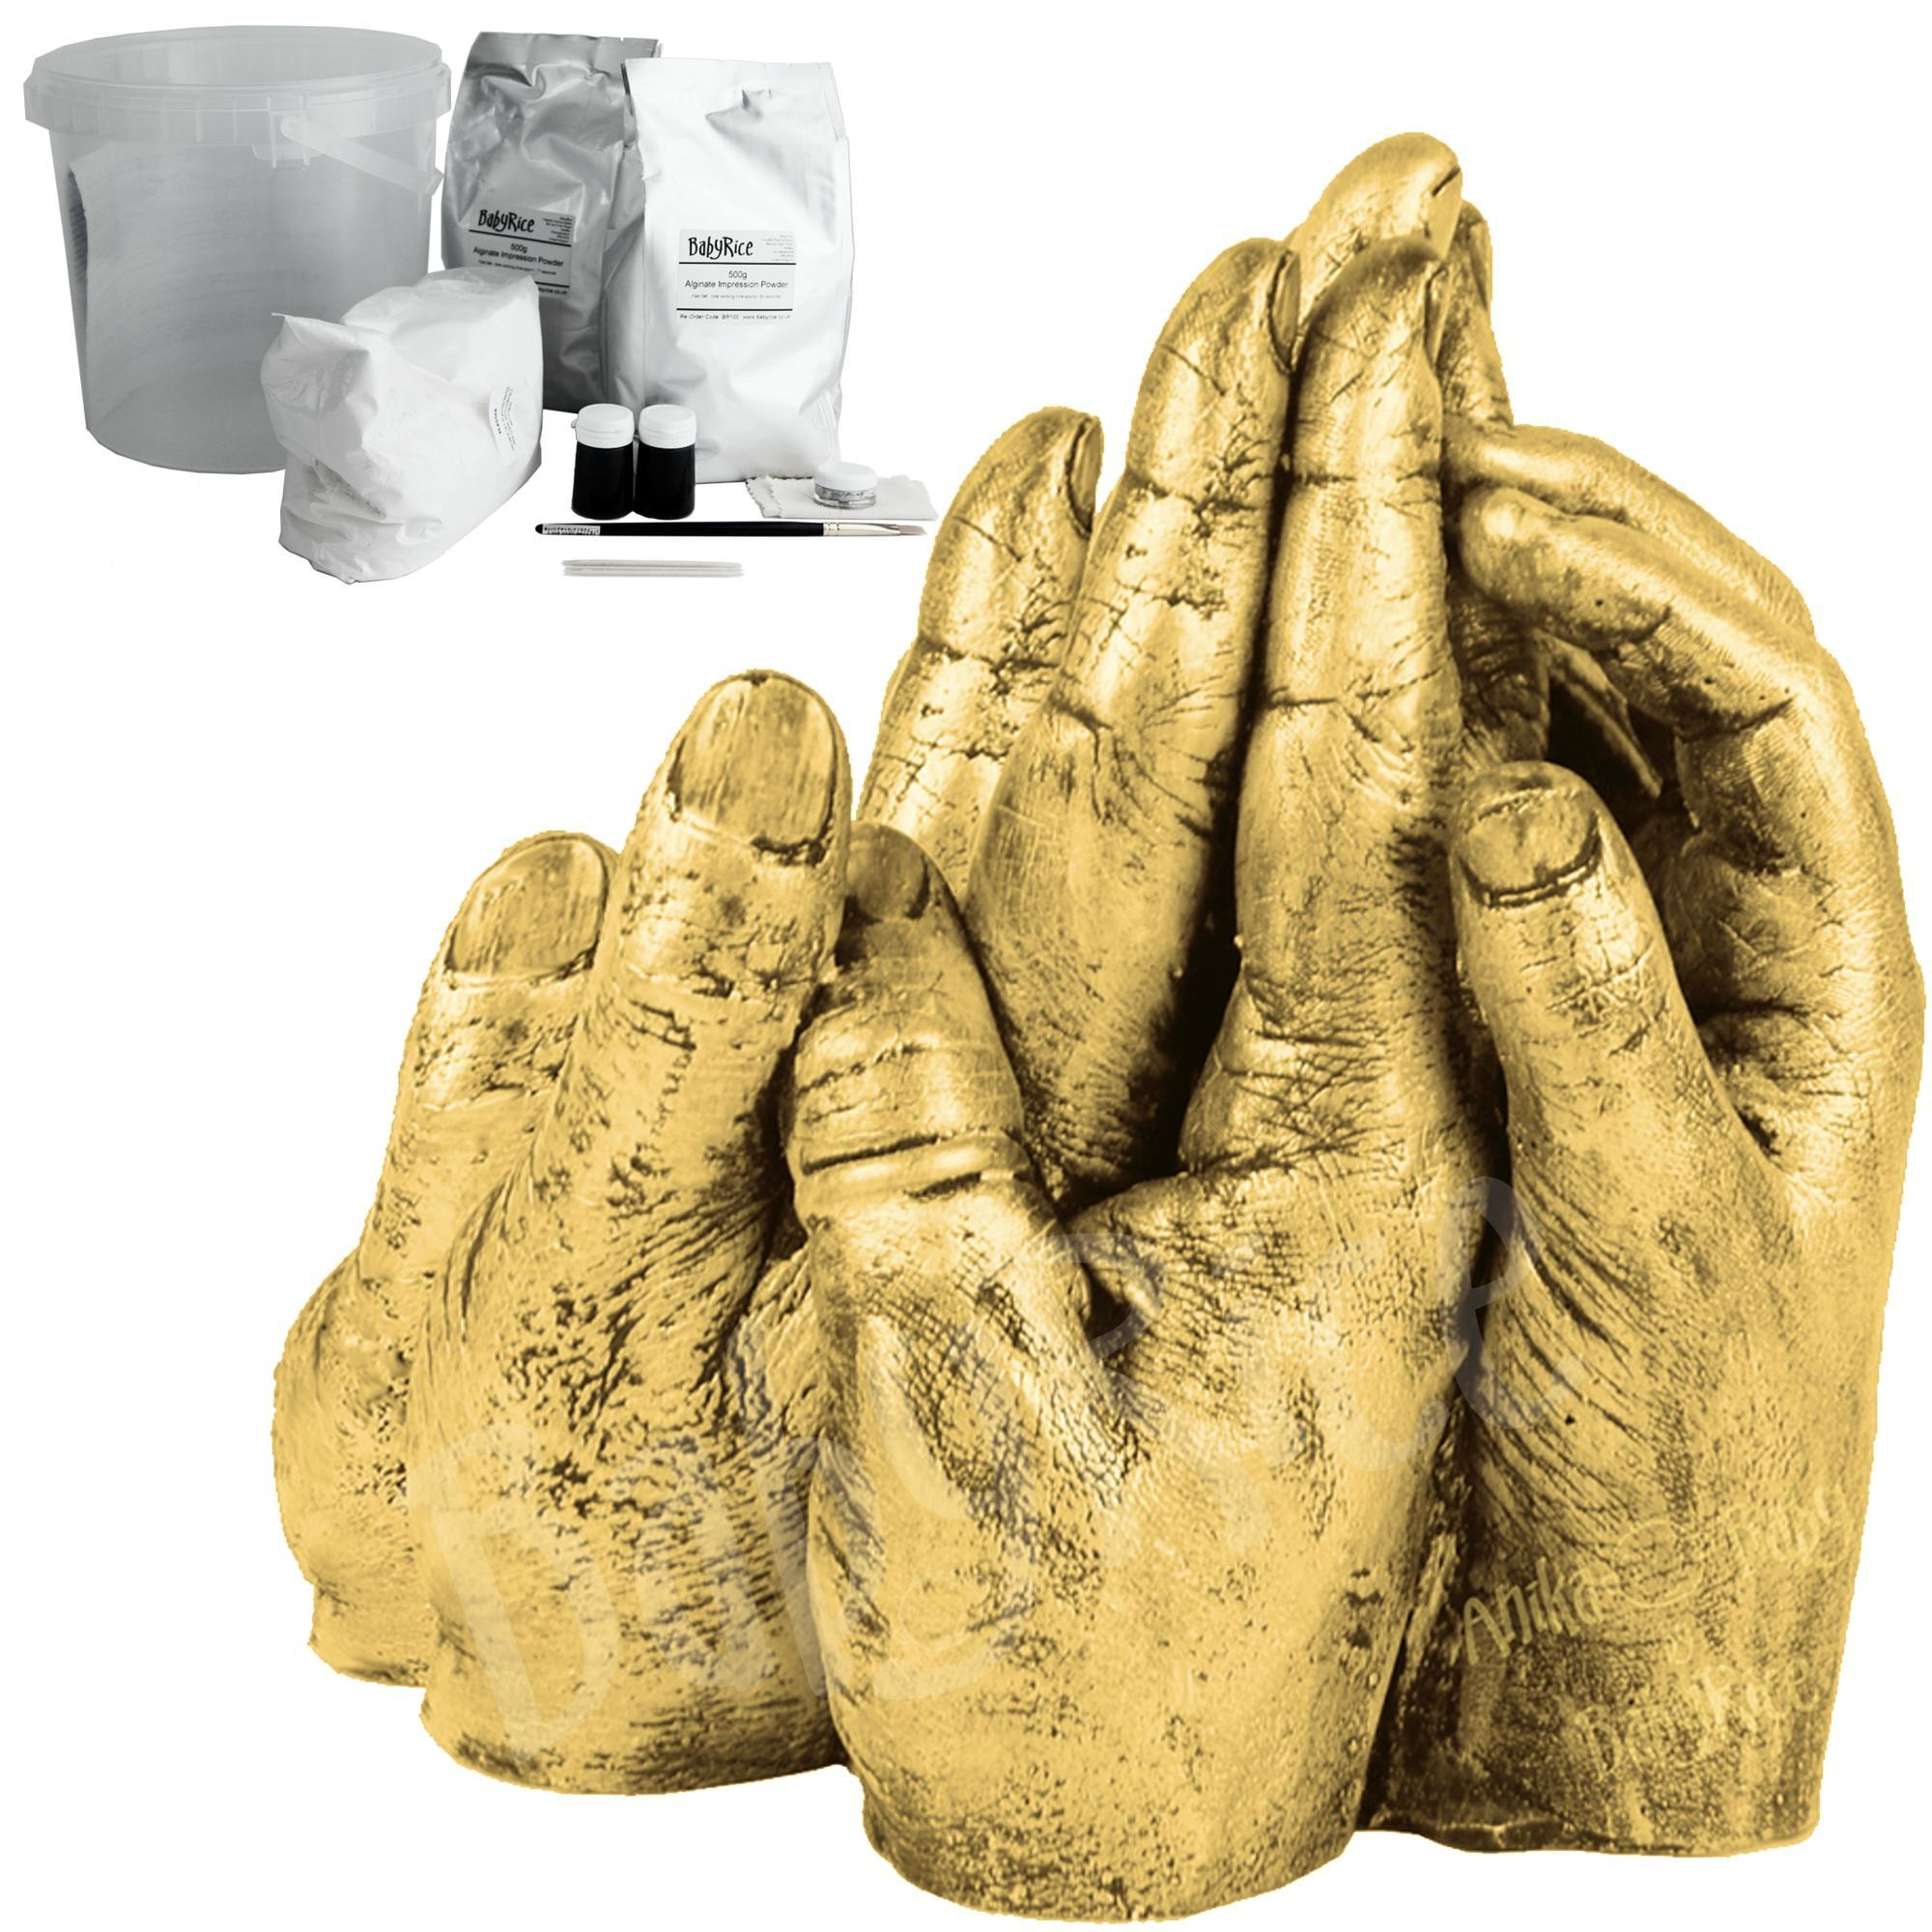 BabyRice Standard Family Hand Casting Kit with Gold Metallic Finish